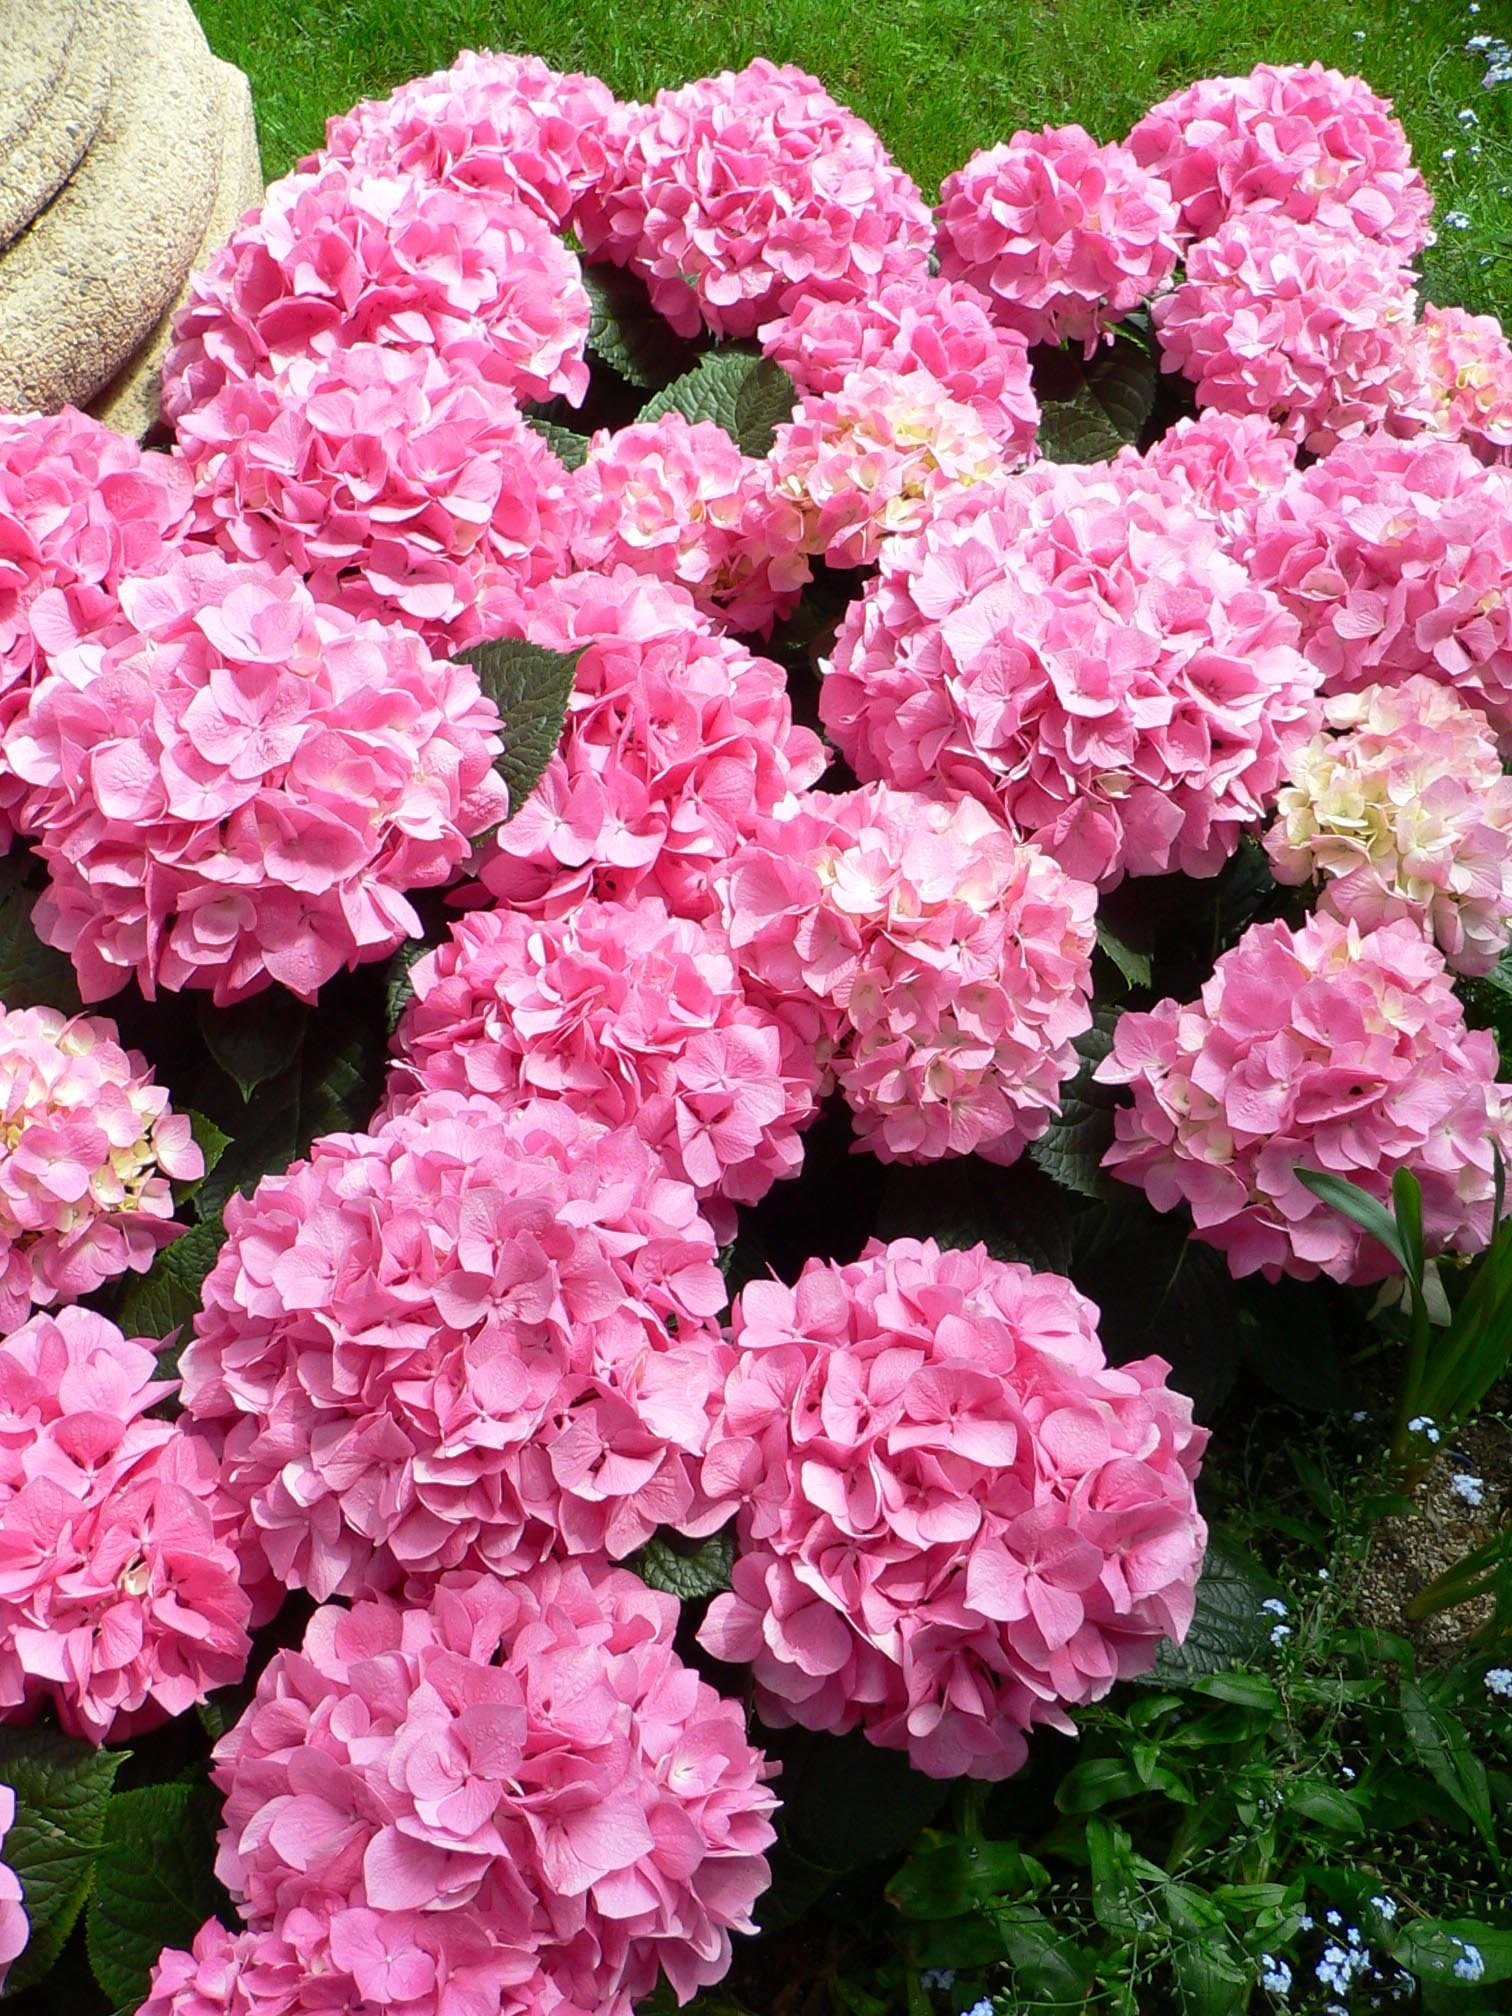 Bombastic Blooms Hydrangeas Are Hardy Showy Late Summer Plant In